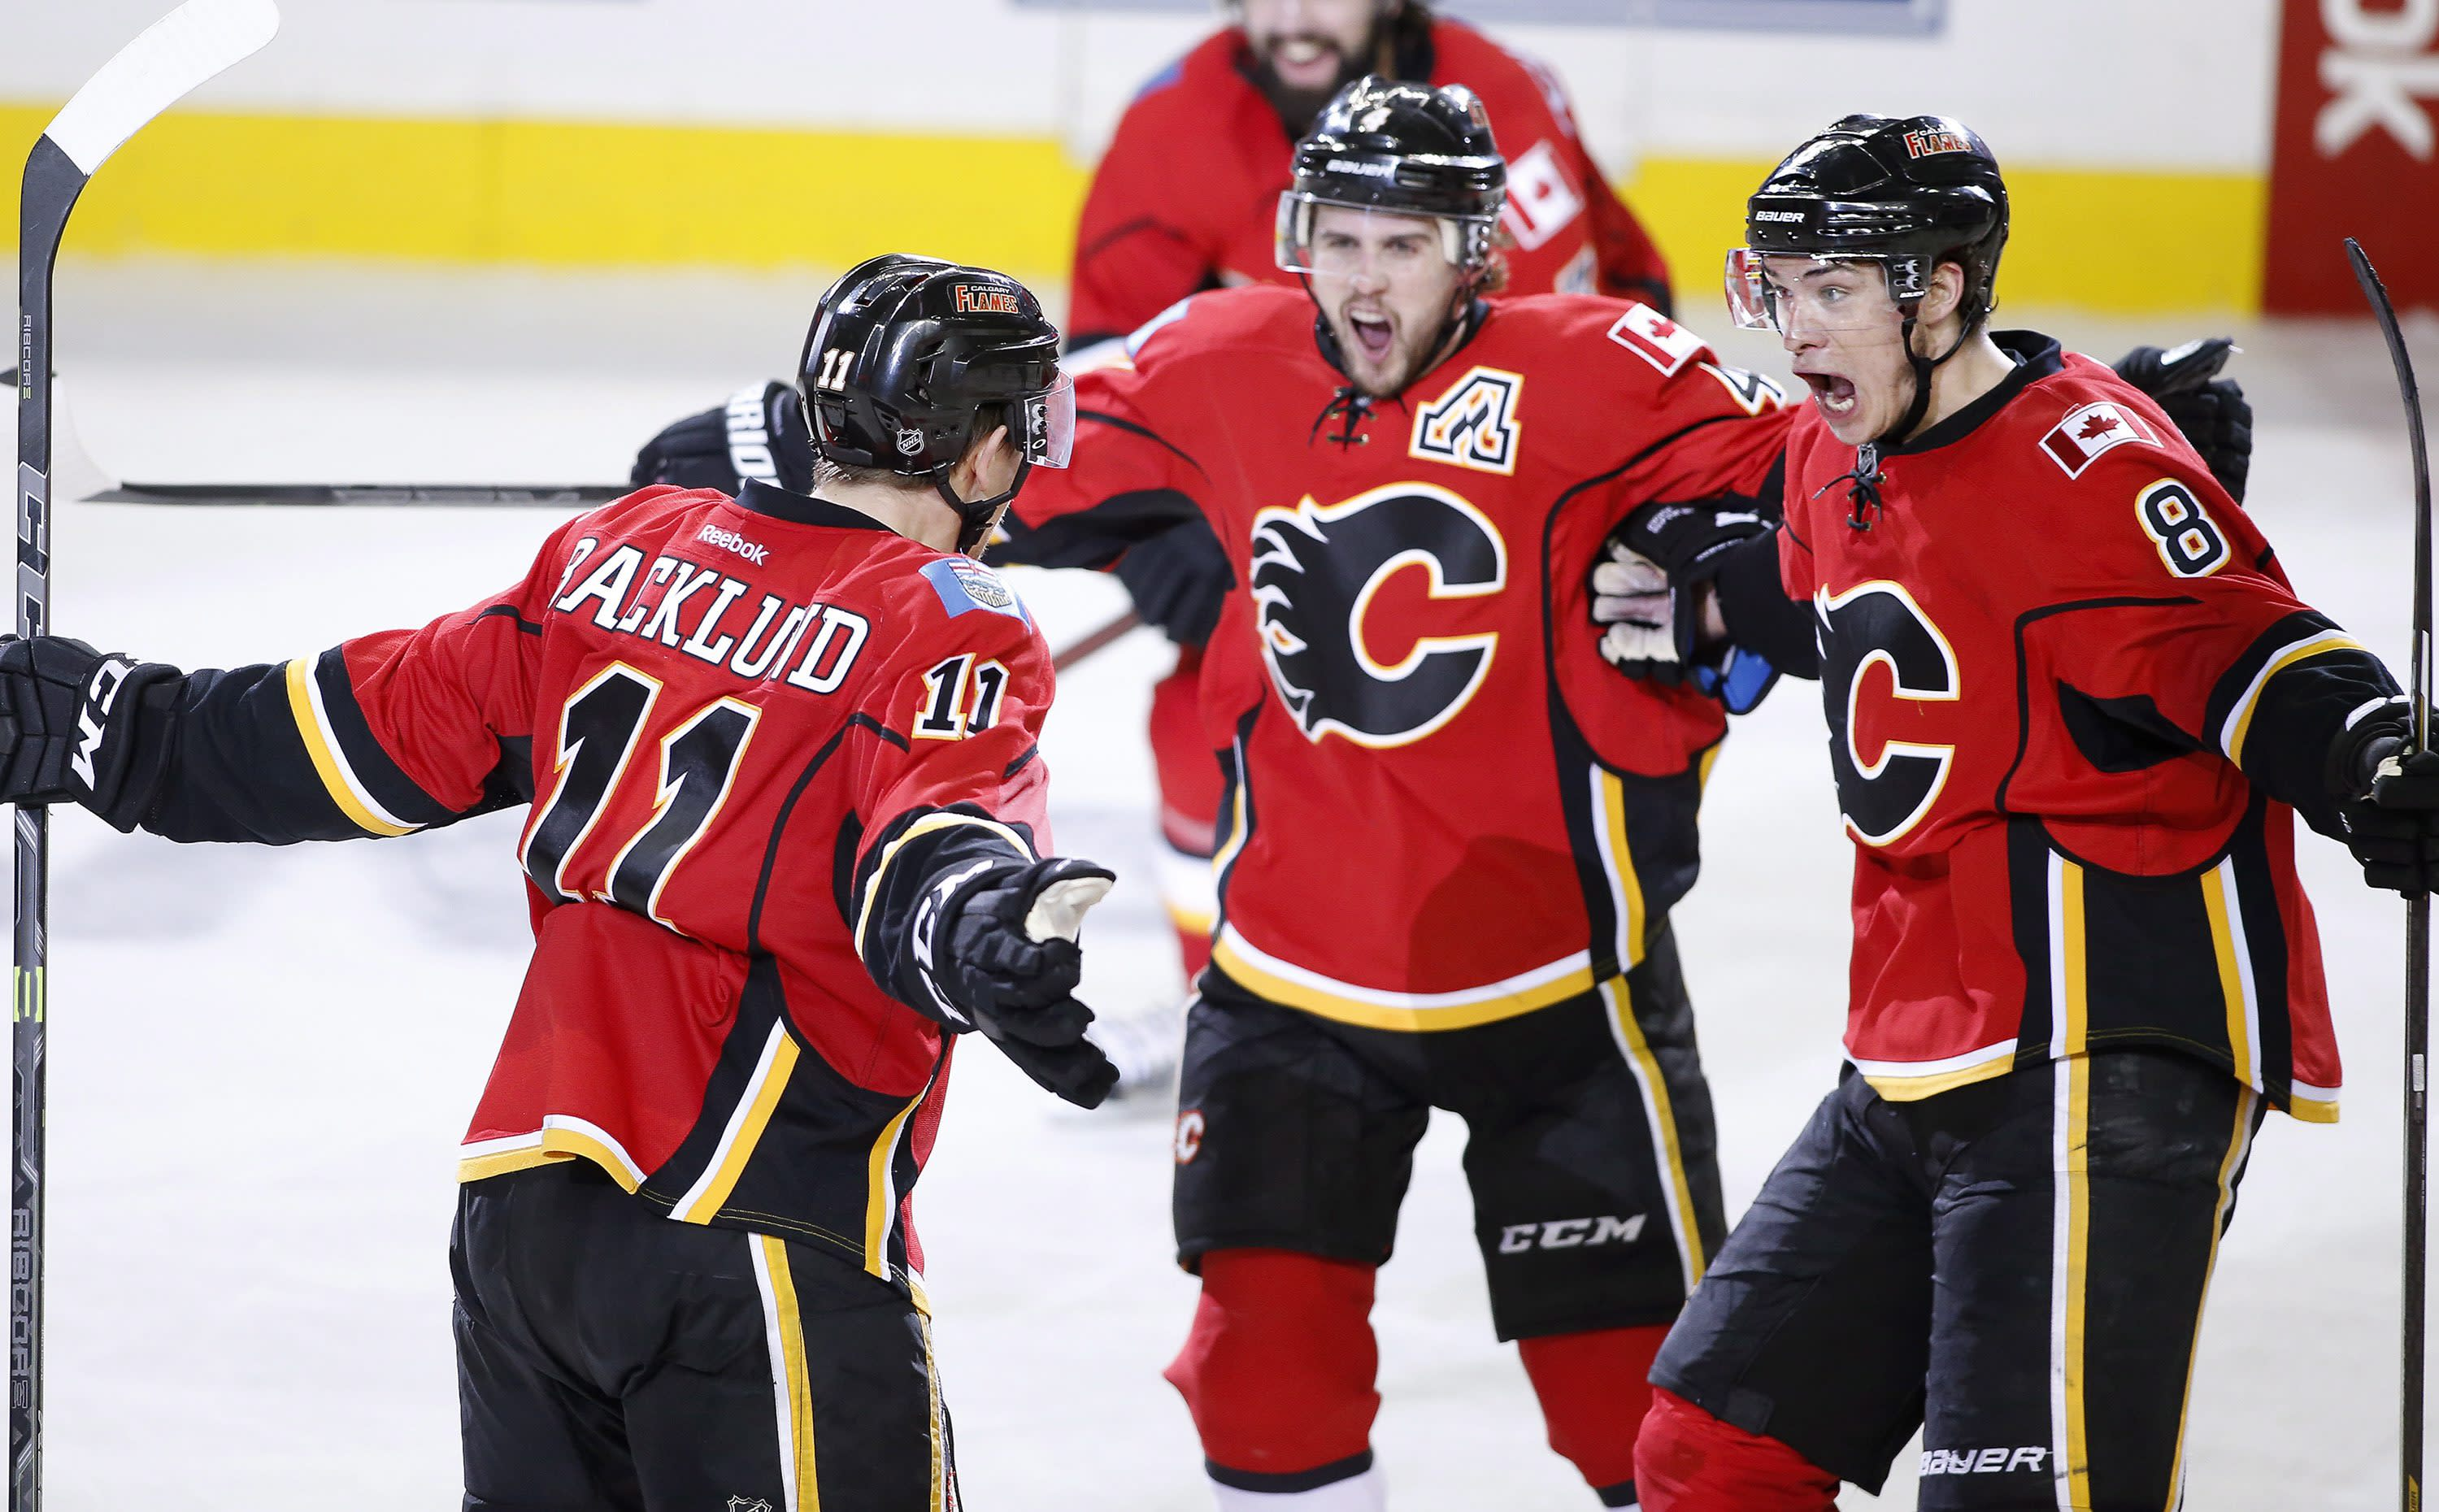 Backlund's OT goal lifts Flames over Ducks 4-3